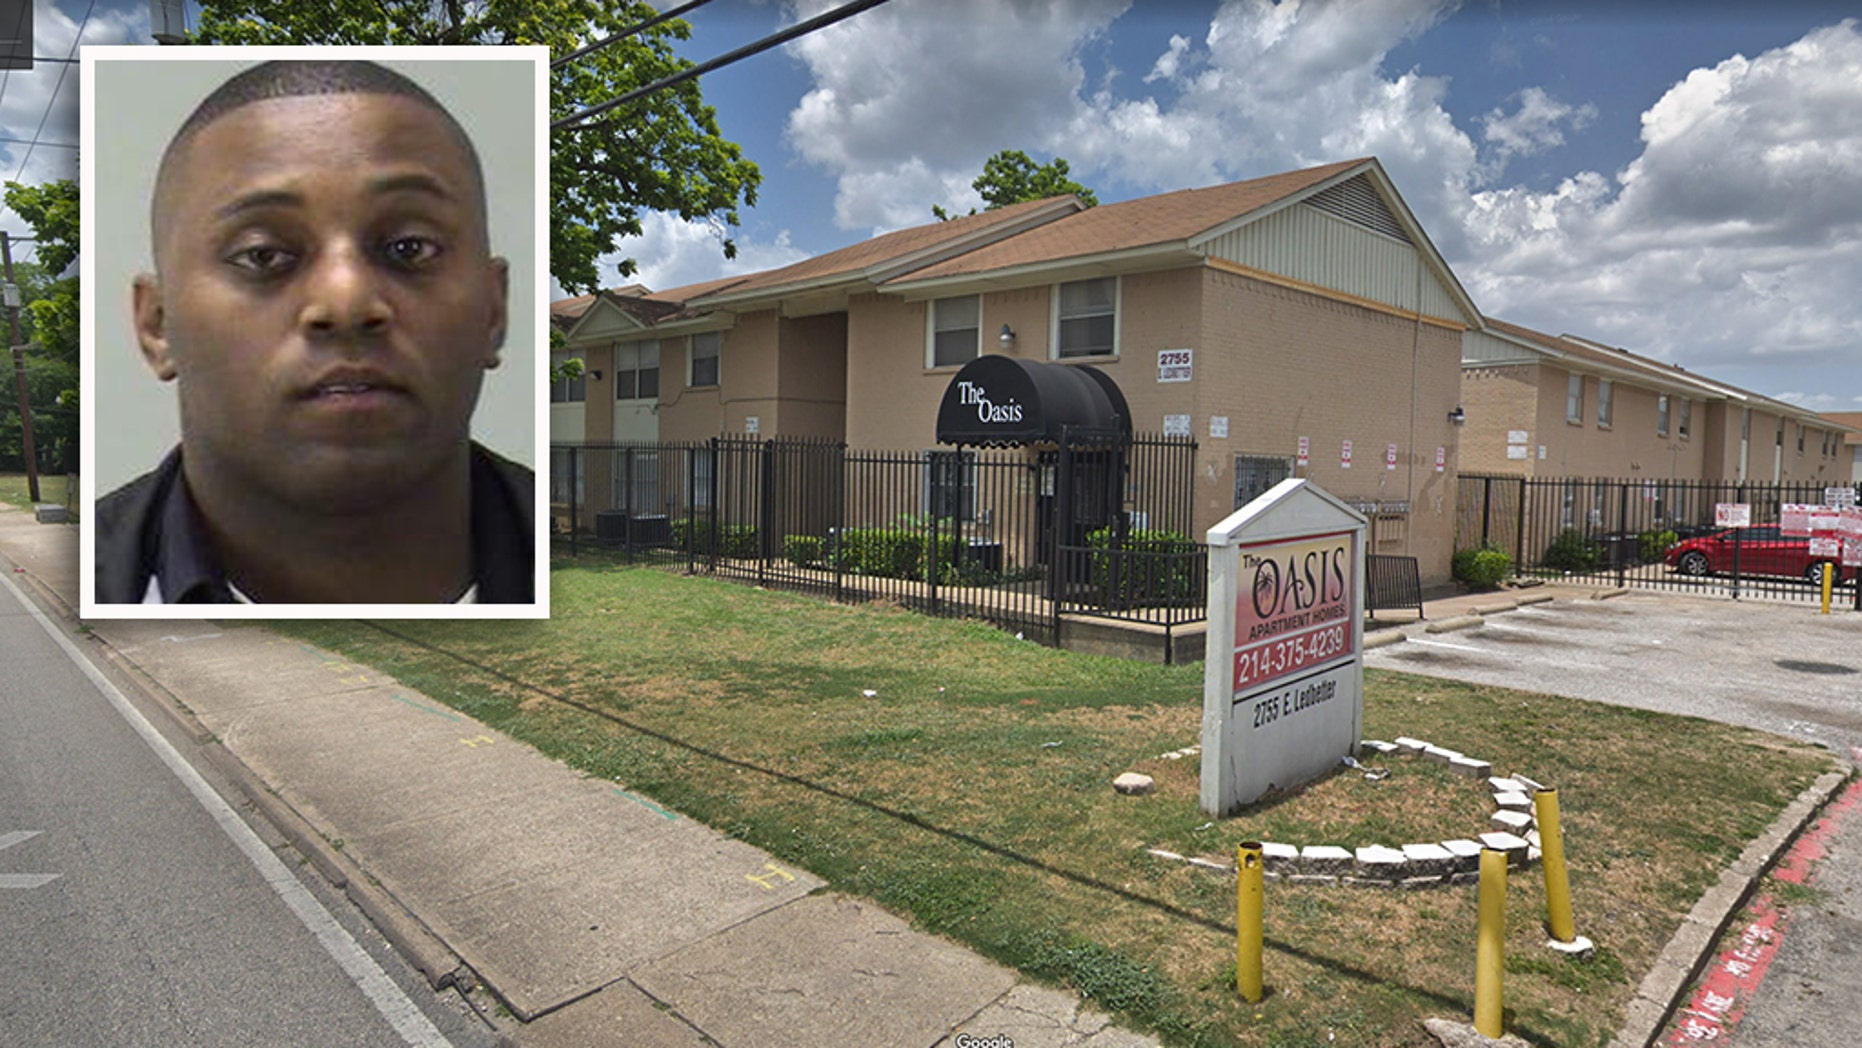 Court documents revealed thatSecurity Officer Vincent Hobbs, 32, (pictured) shot and killed32-year-old Christopher Willard while he was unarmed.